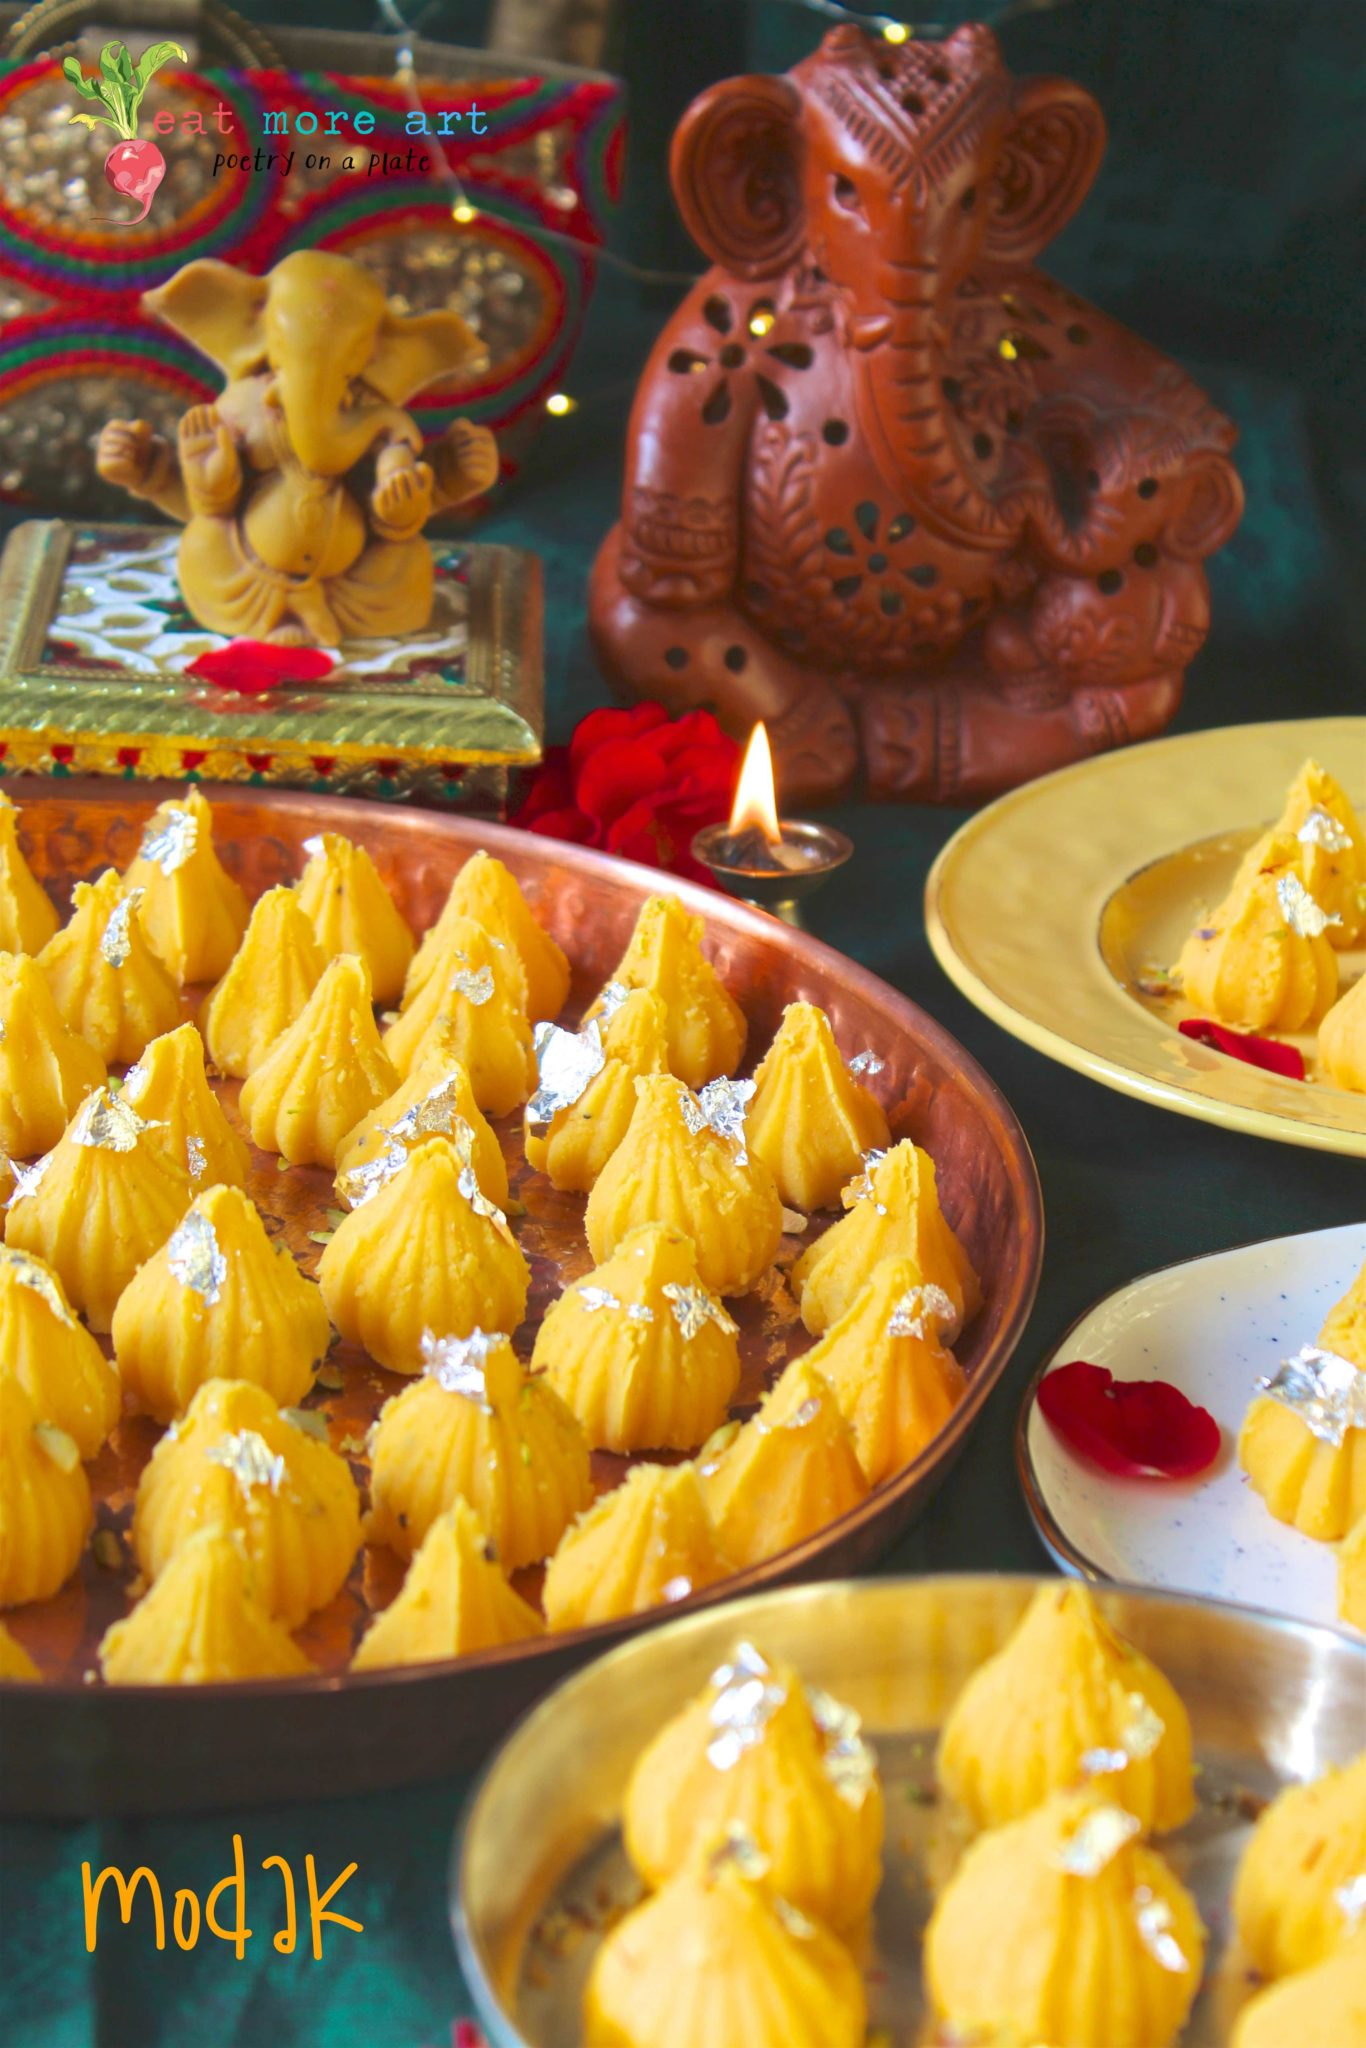 Yellow color modaks on a few different platters in front of Ganesh idol